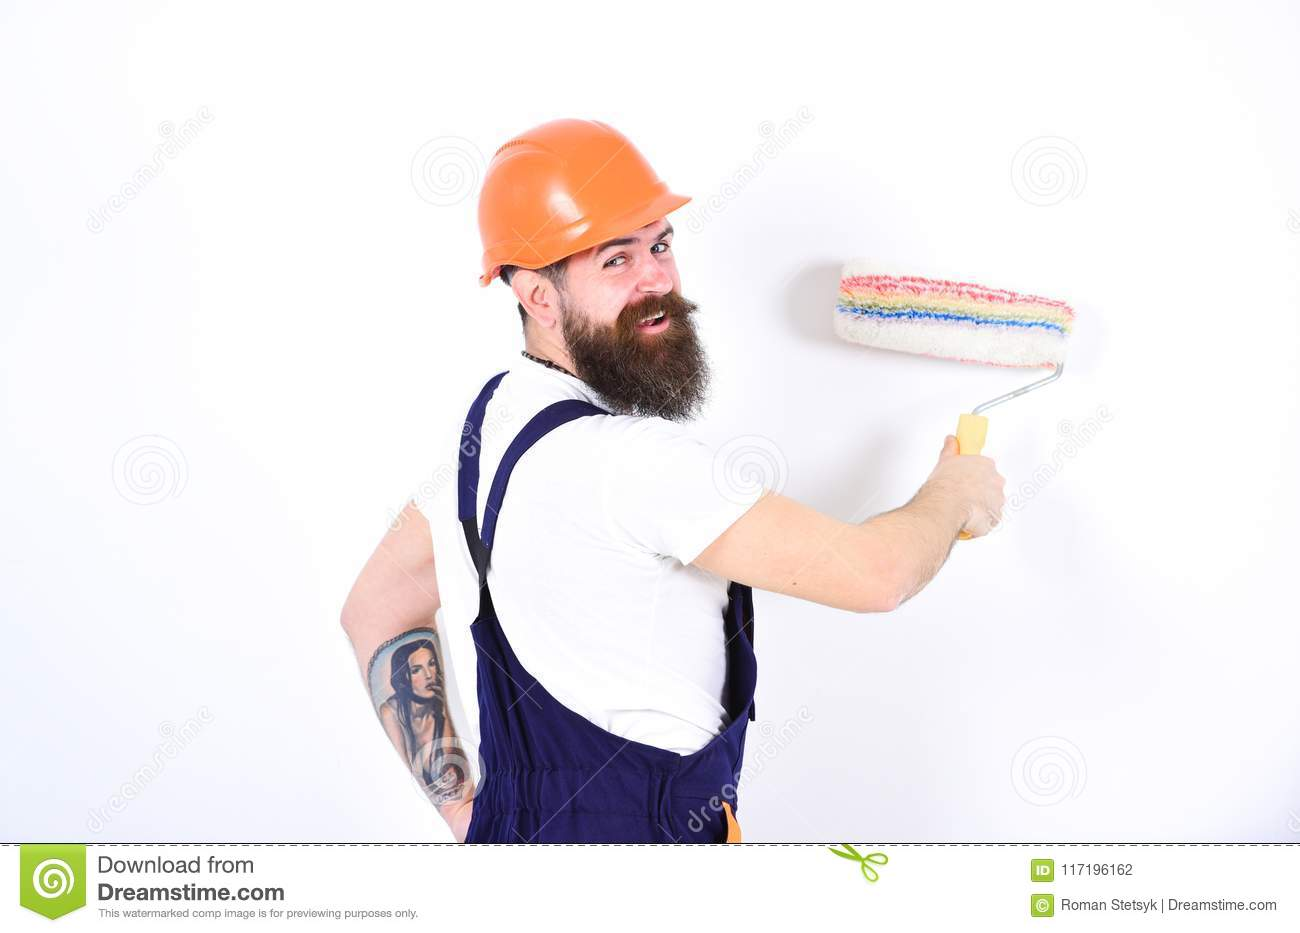 Home redecoration concept. Turn back smiling builder painting wall with paint roller. Isolated man in orange helmet and